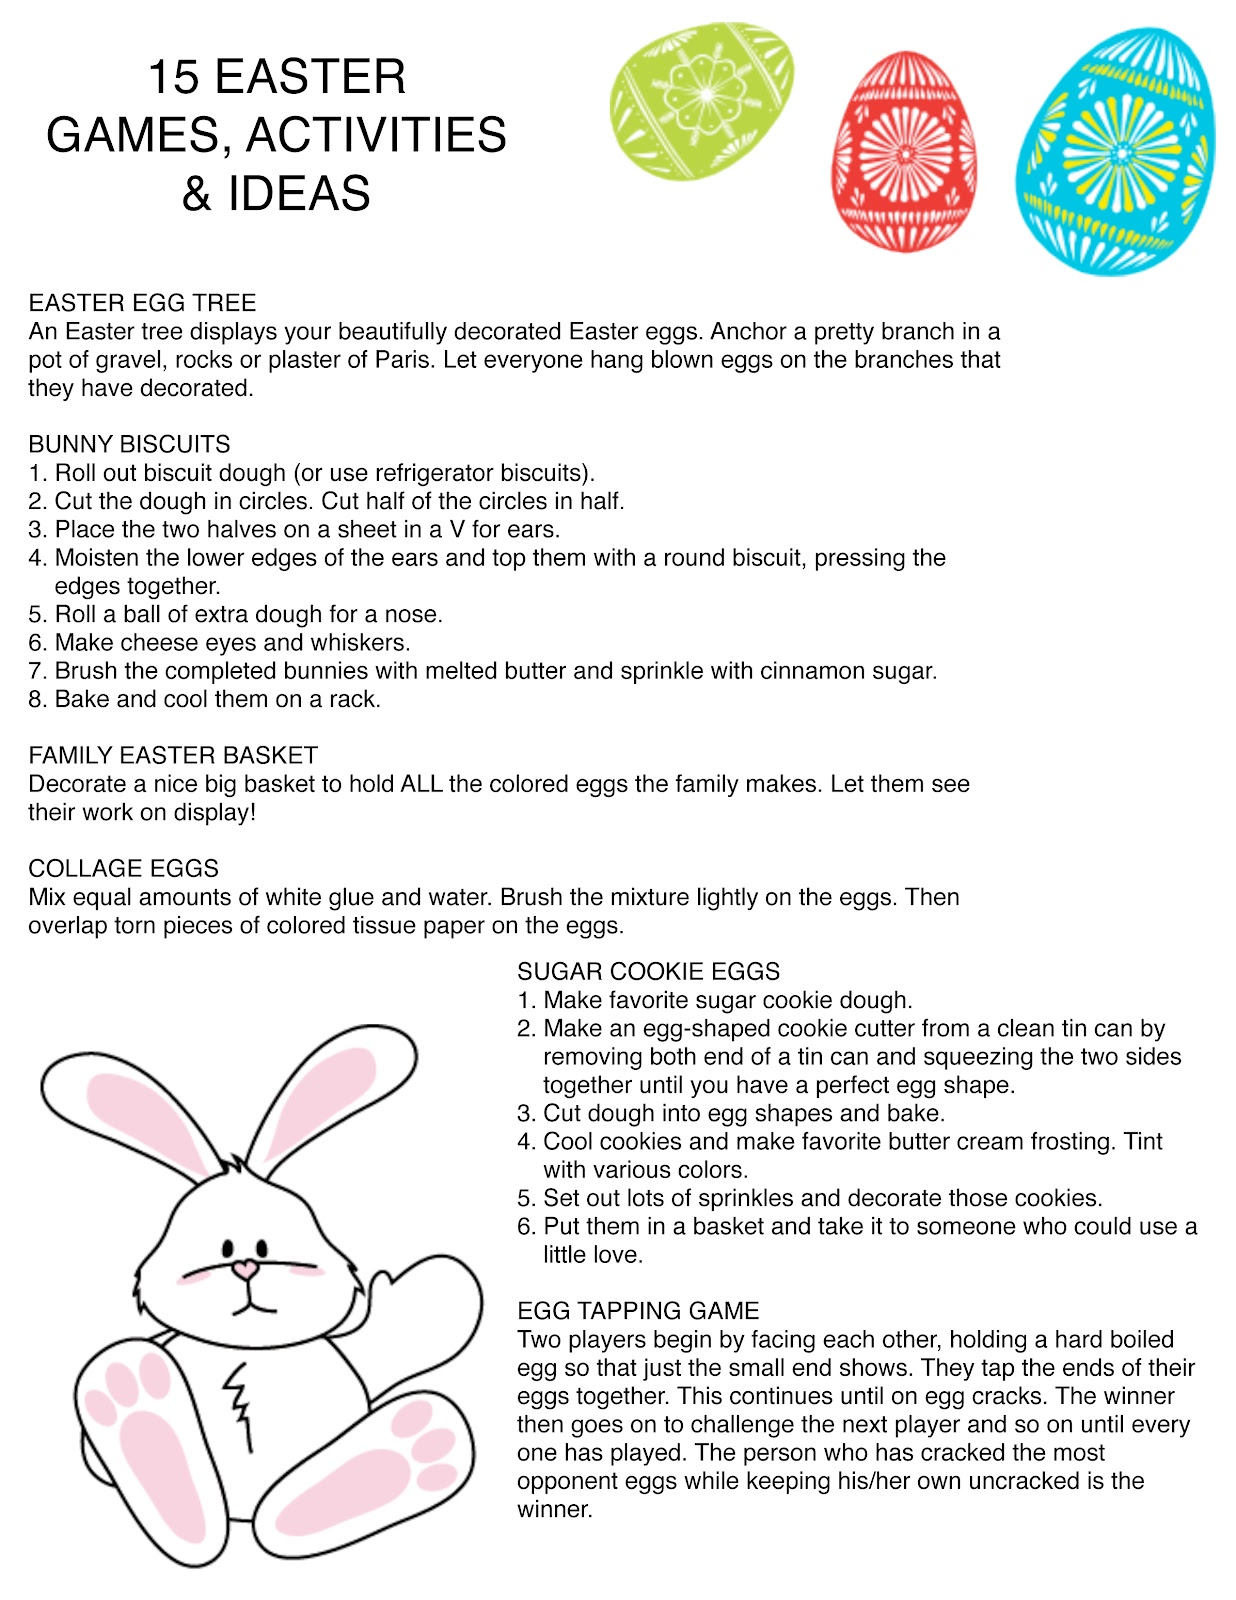 15 Easter Games Activities Amp Ideas Printable